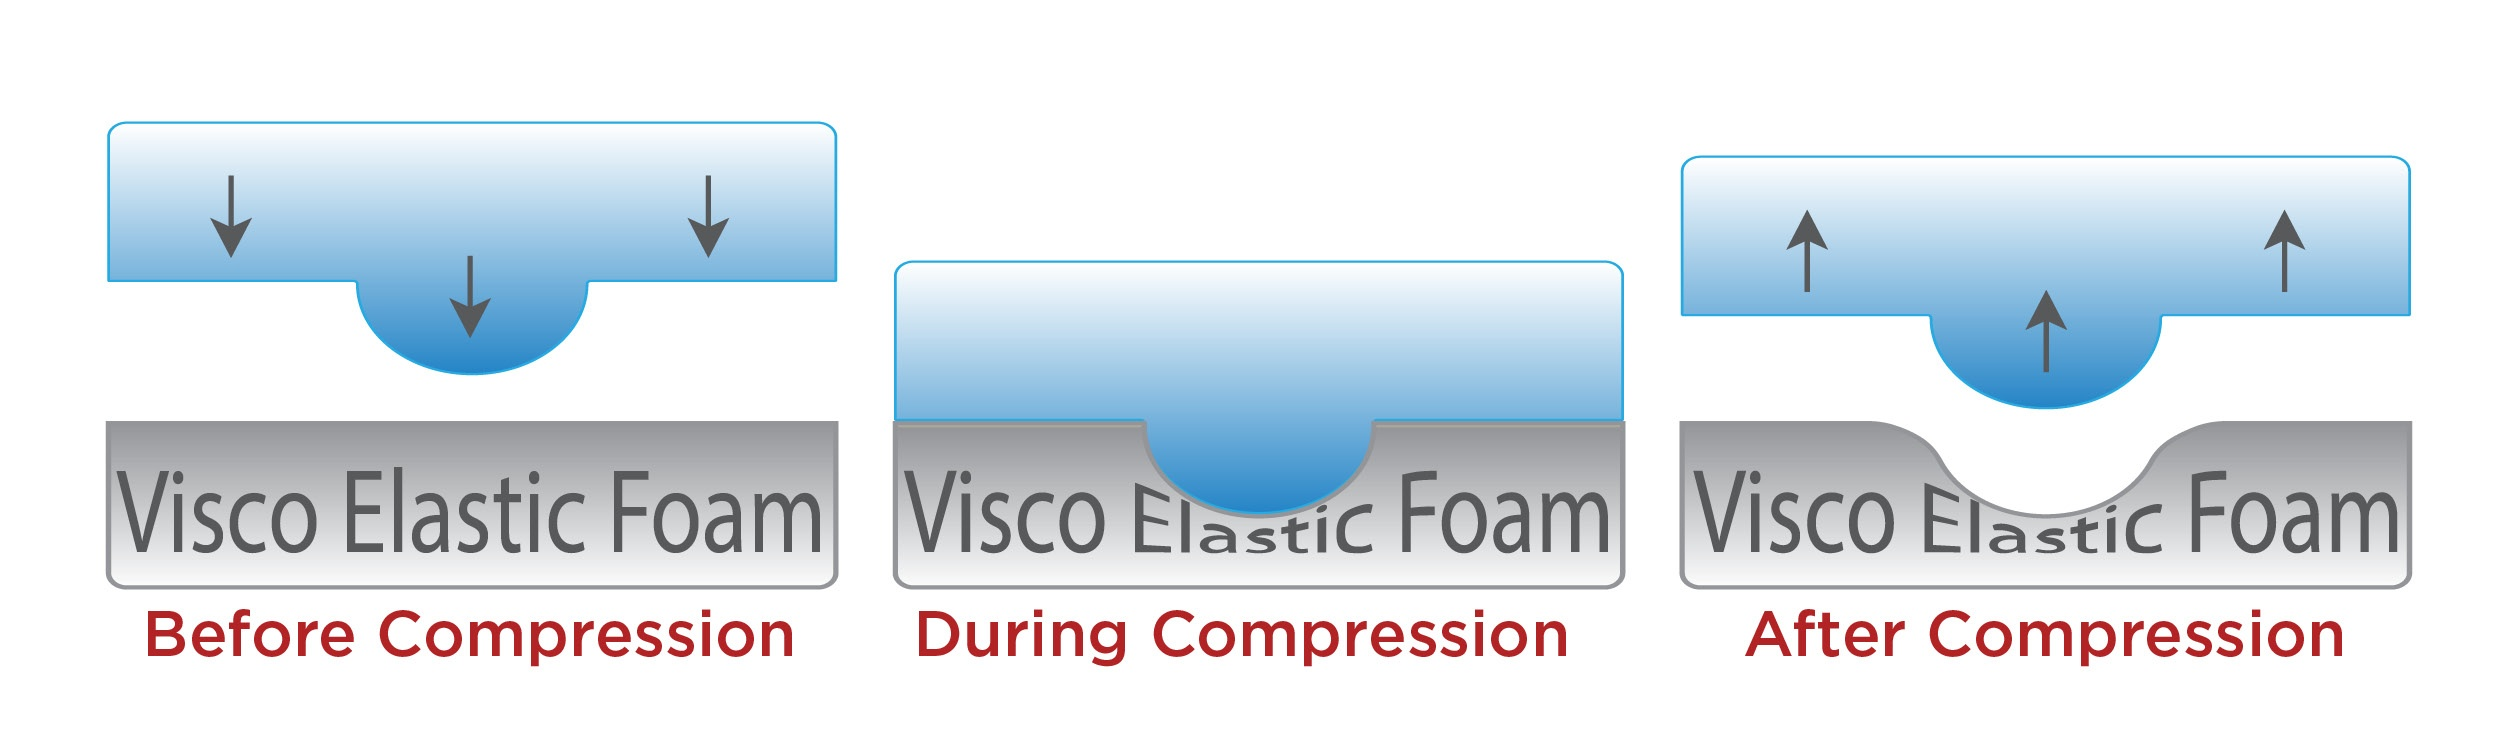 Visco Foam